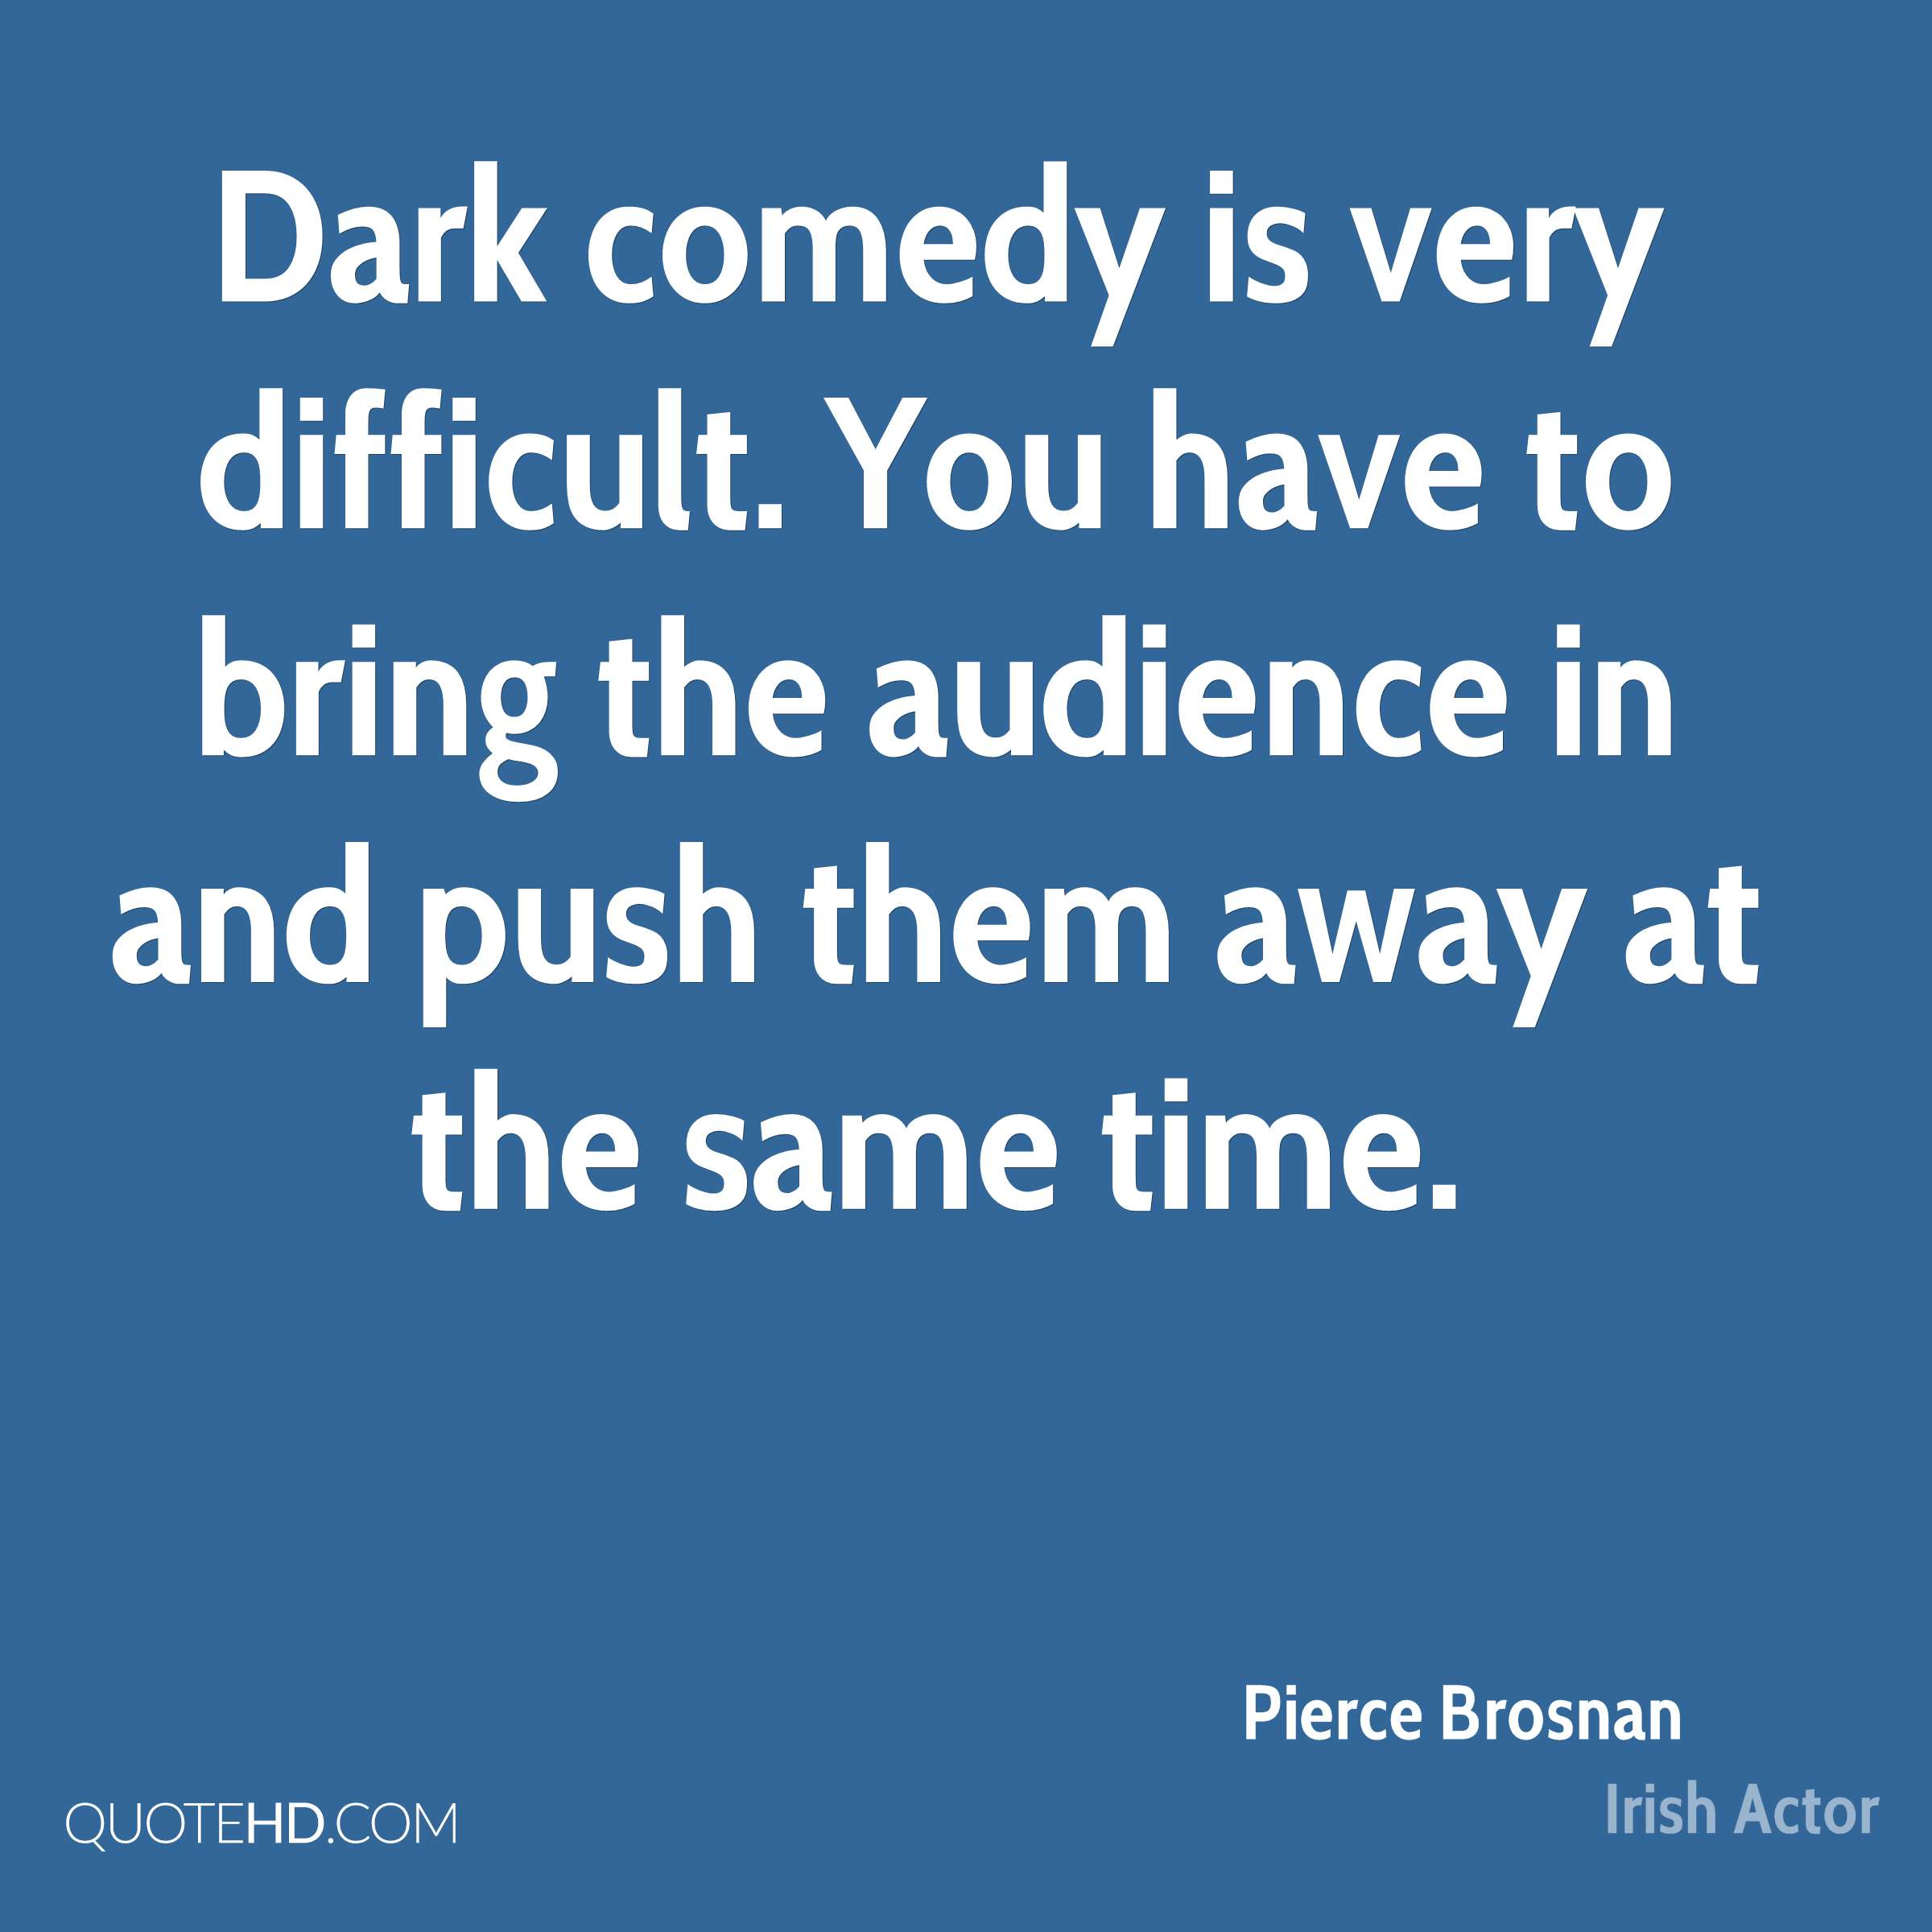 Dark comedy is very difficult. You have to bring the audience in and push them away at the same time.